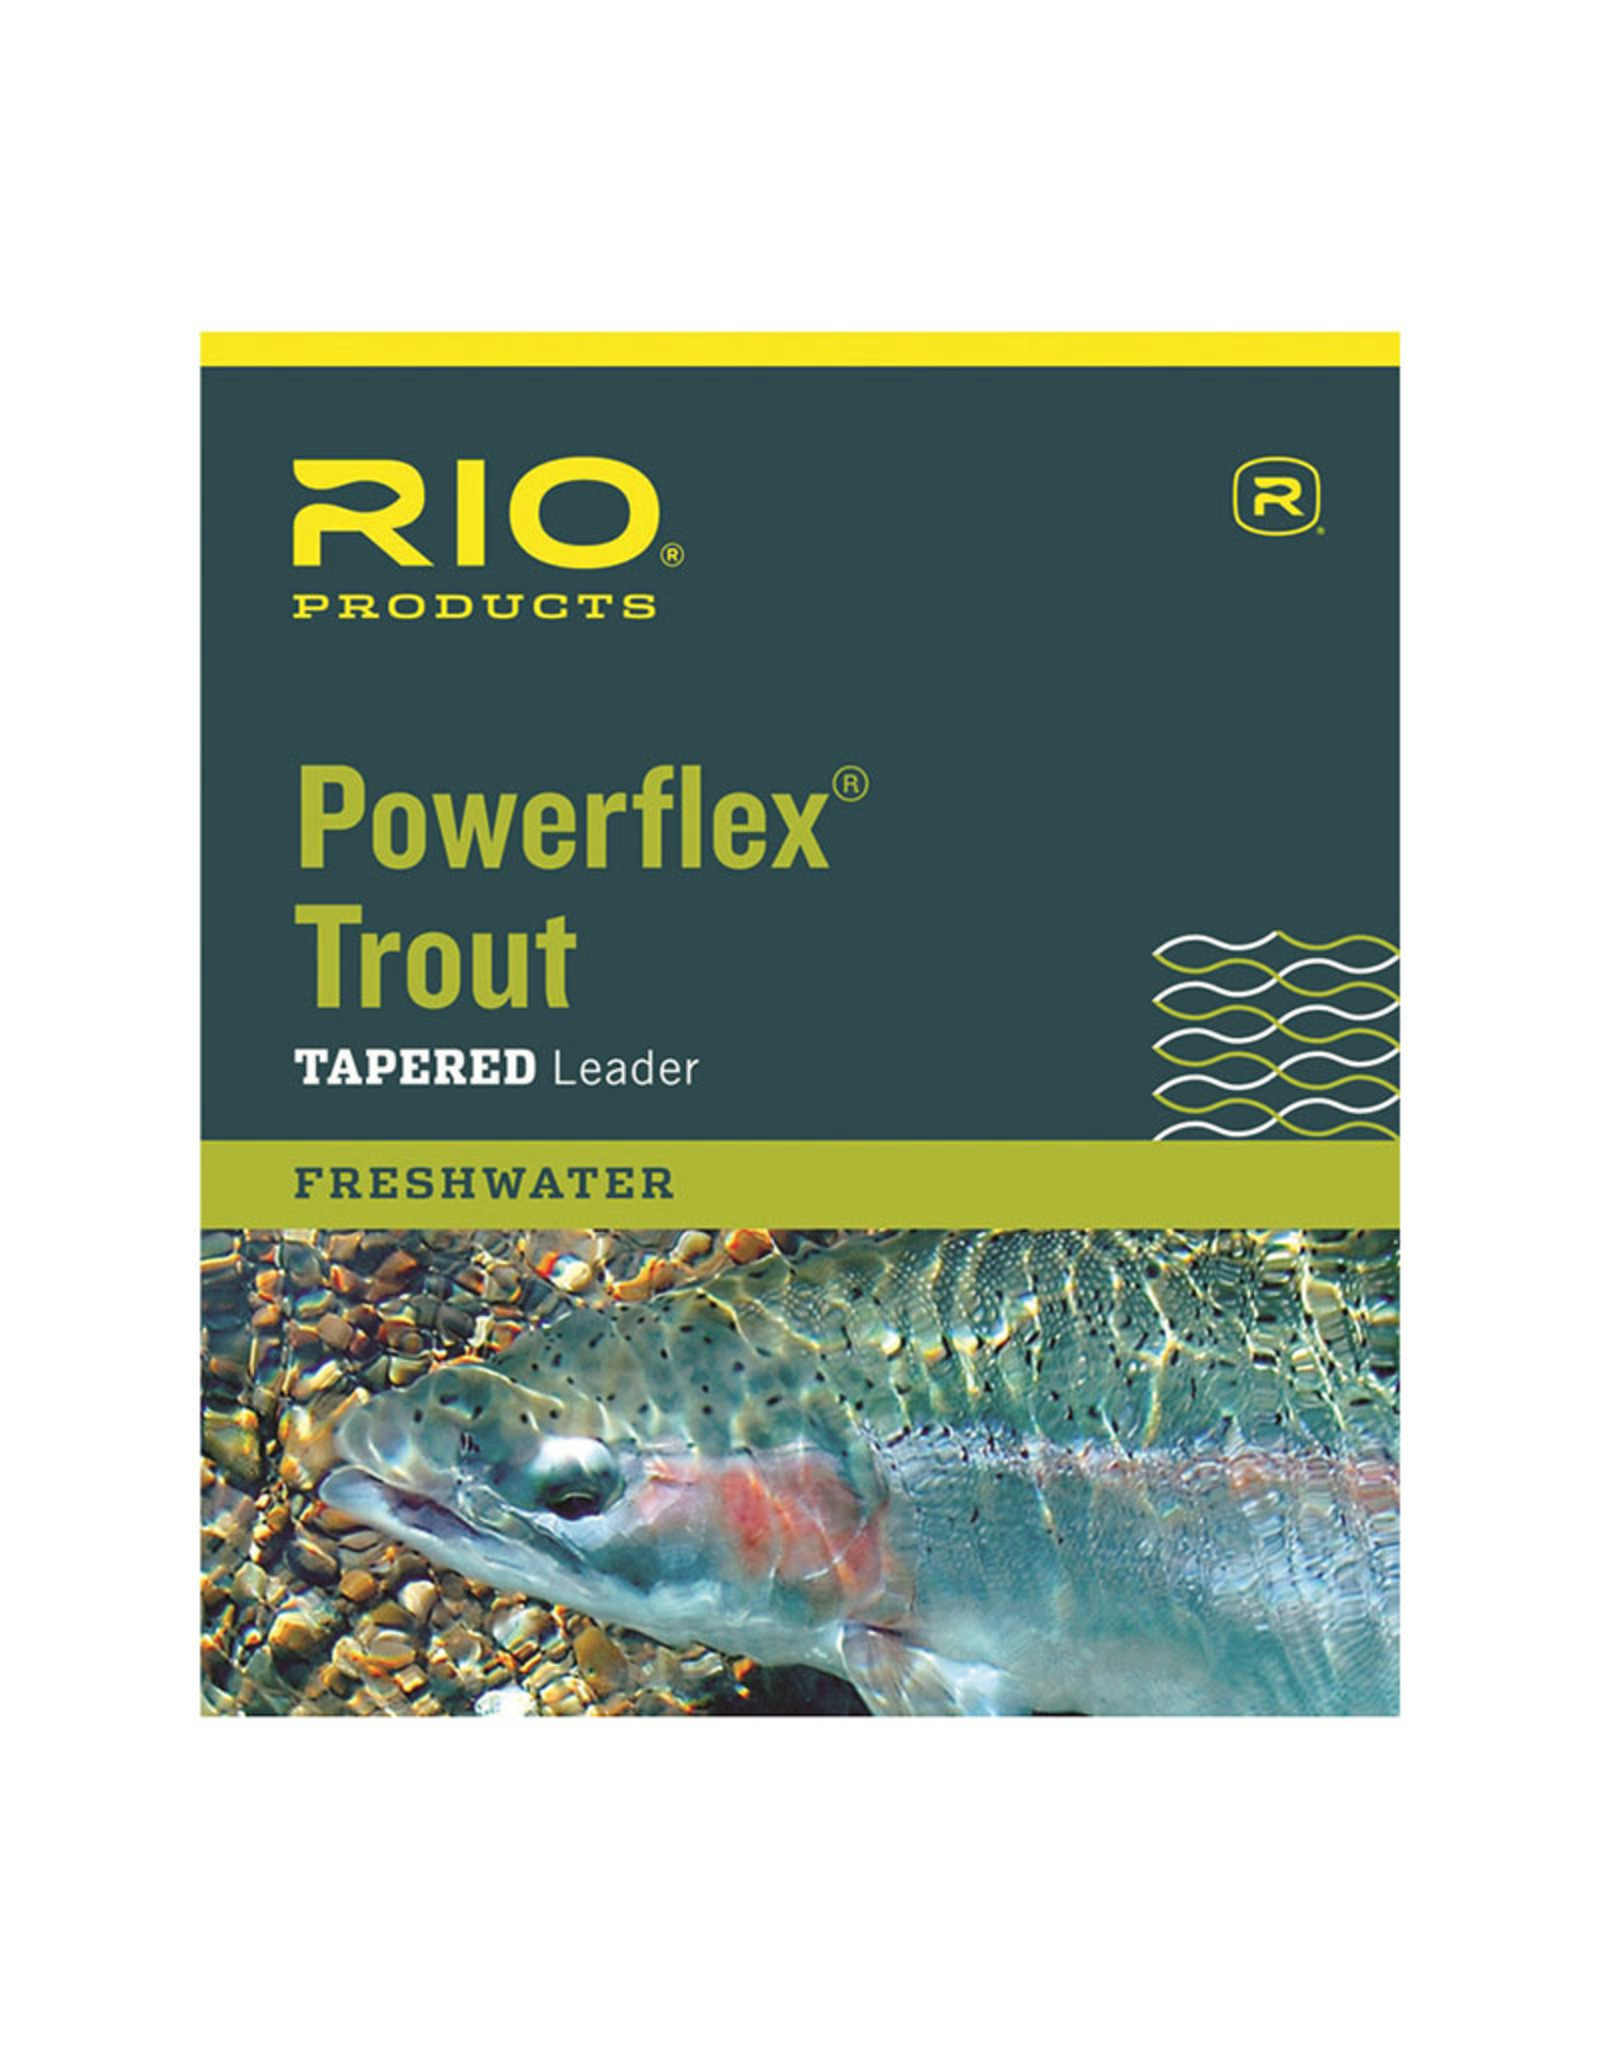 RIO Products Powerflex Trout 9ft Leader: 3 Pack